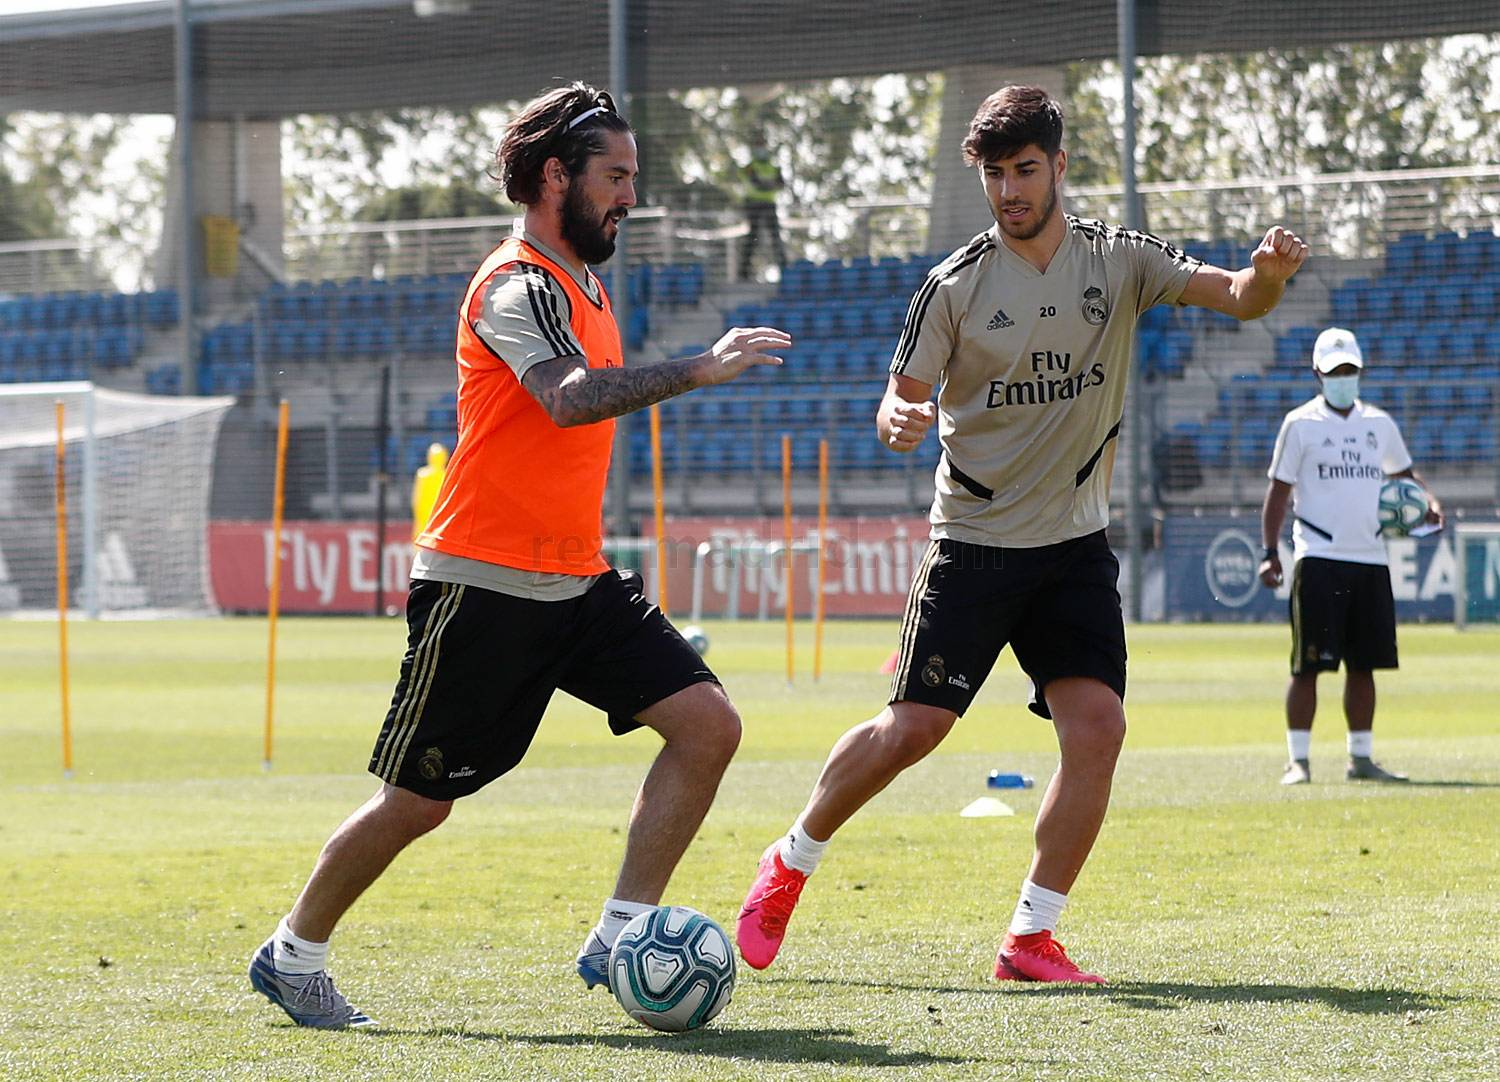 Real Madrid - Entrenamiento del Real Madrid  - 25-05-2020